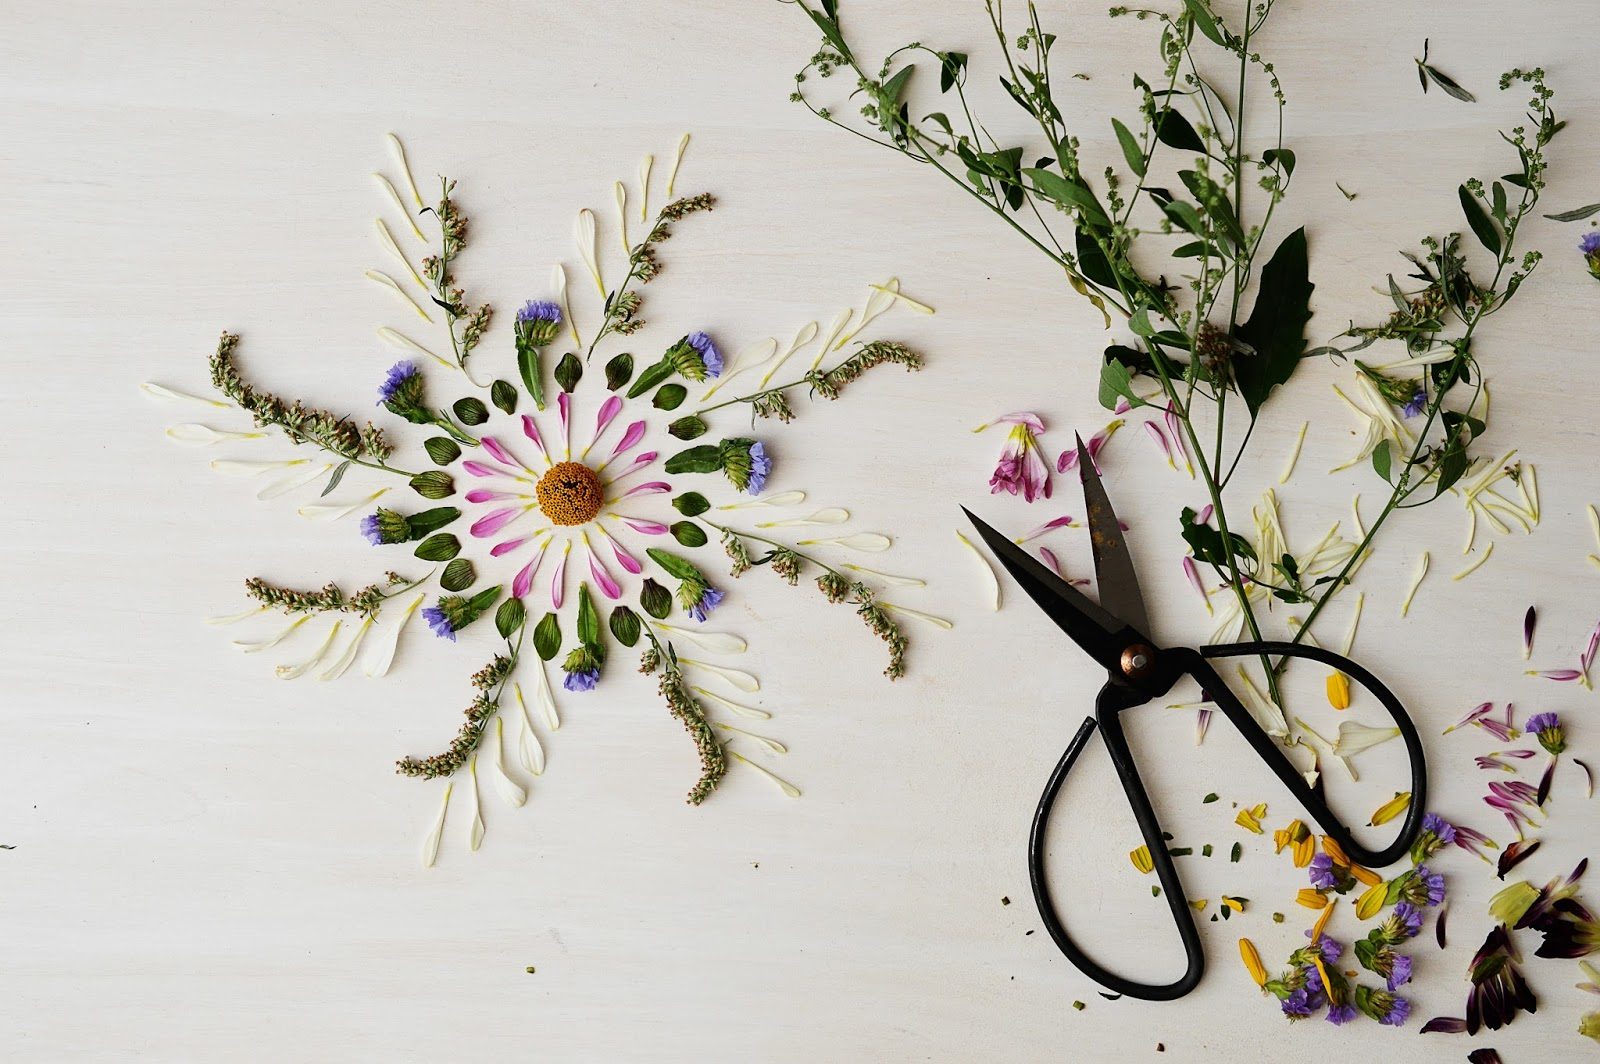 DIY Nature Mandalas | Motte's Blog